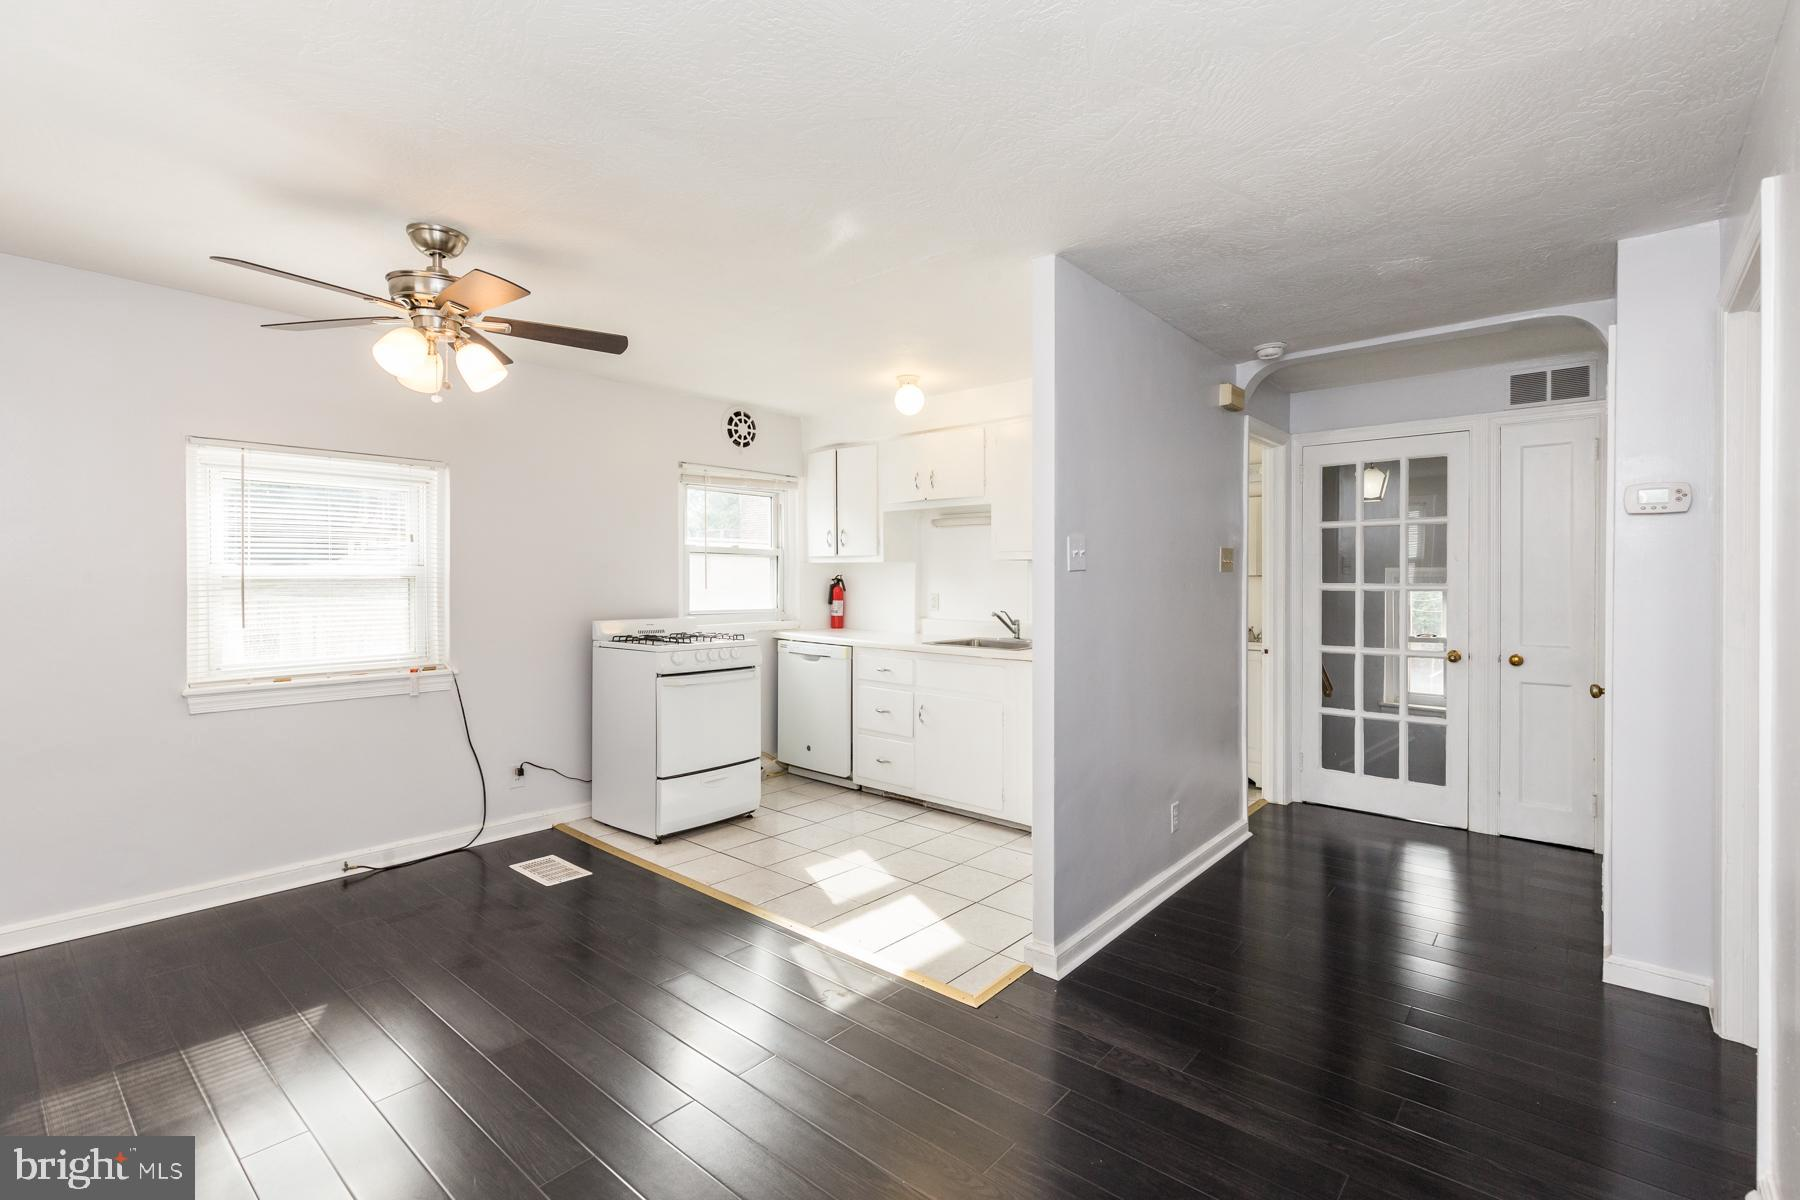 278 MONTGOMERY AVENUE, MERION STATION, PA 19066